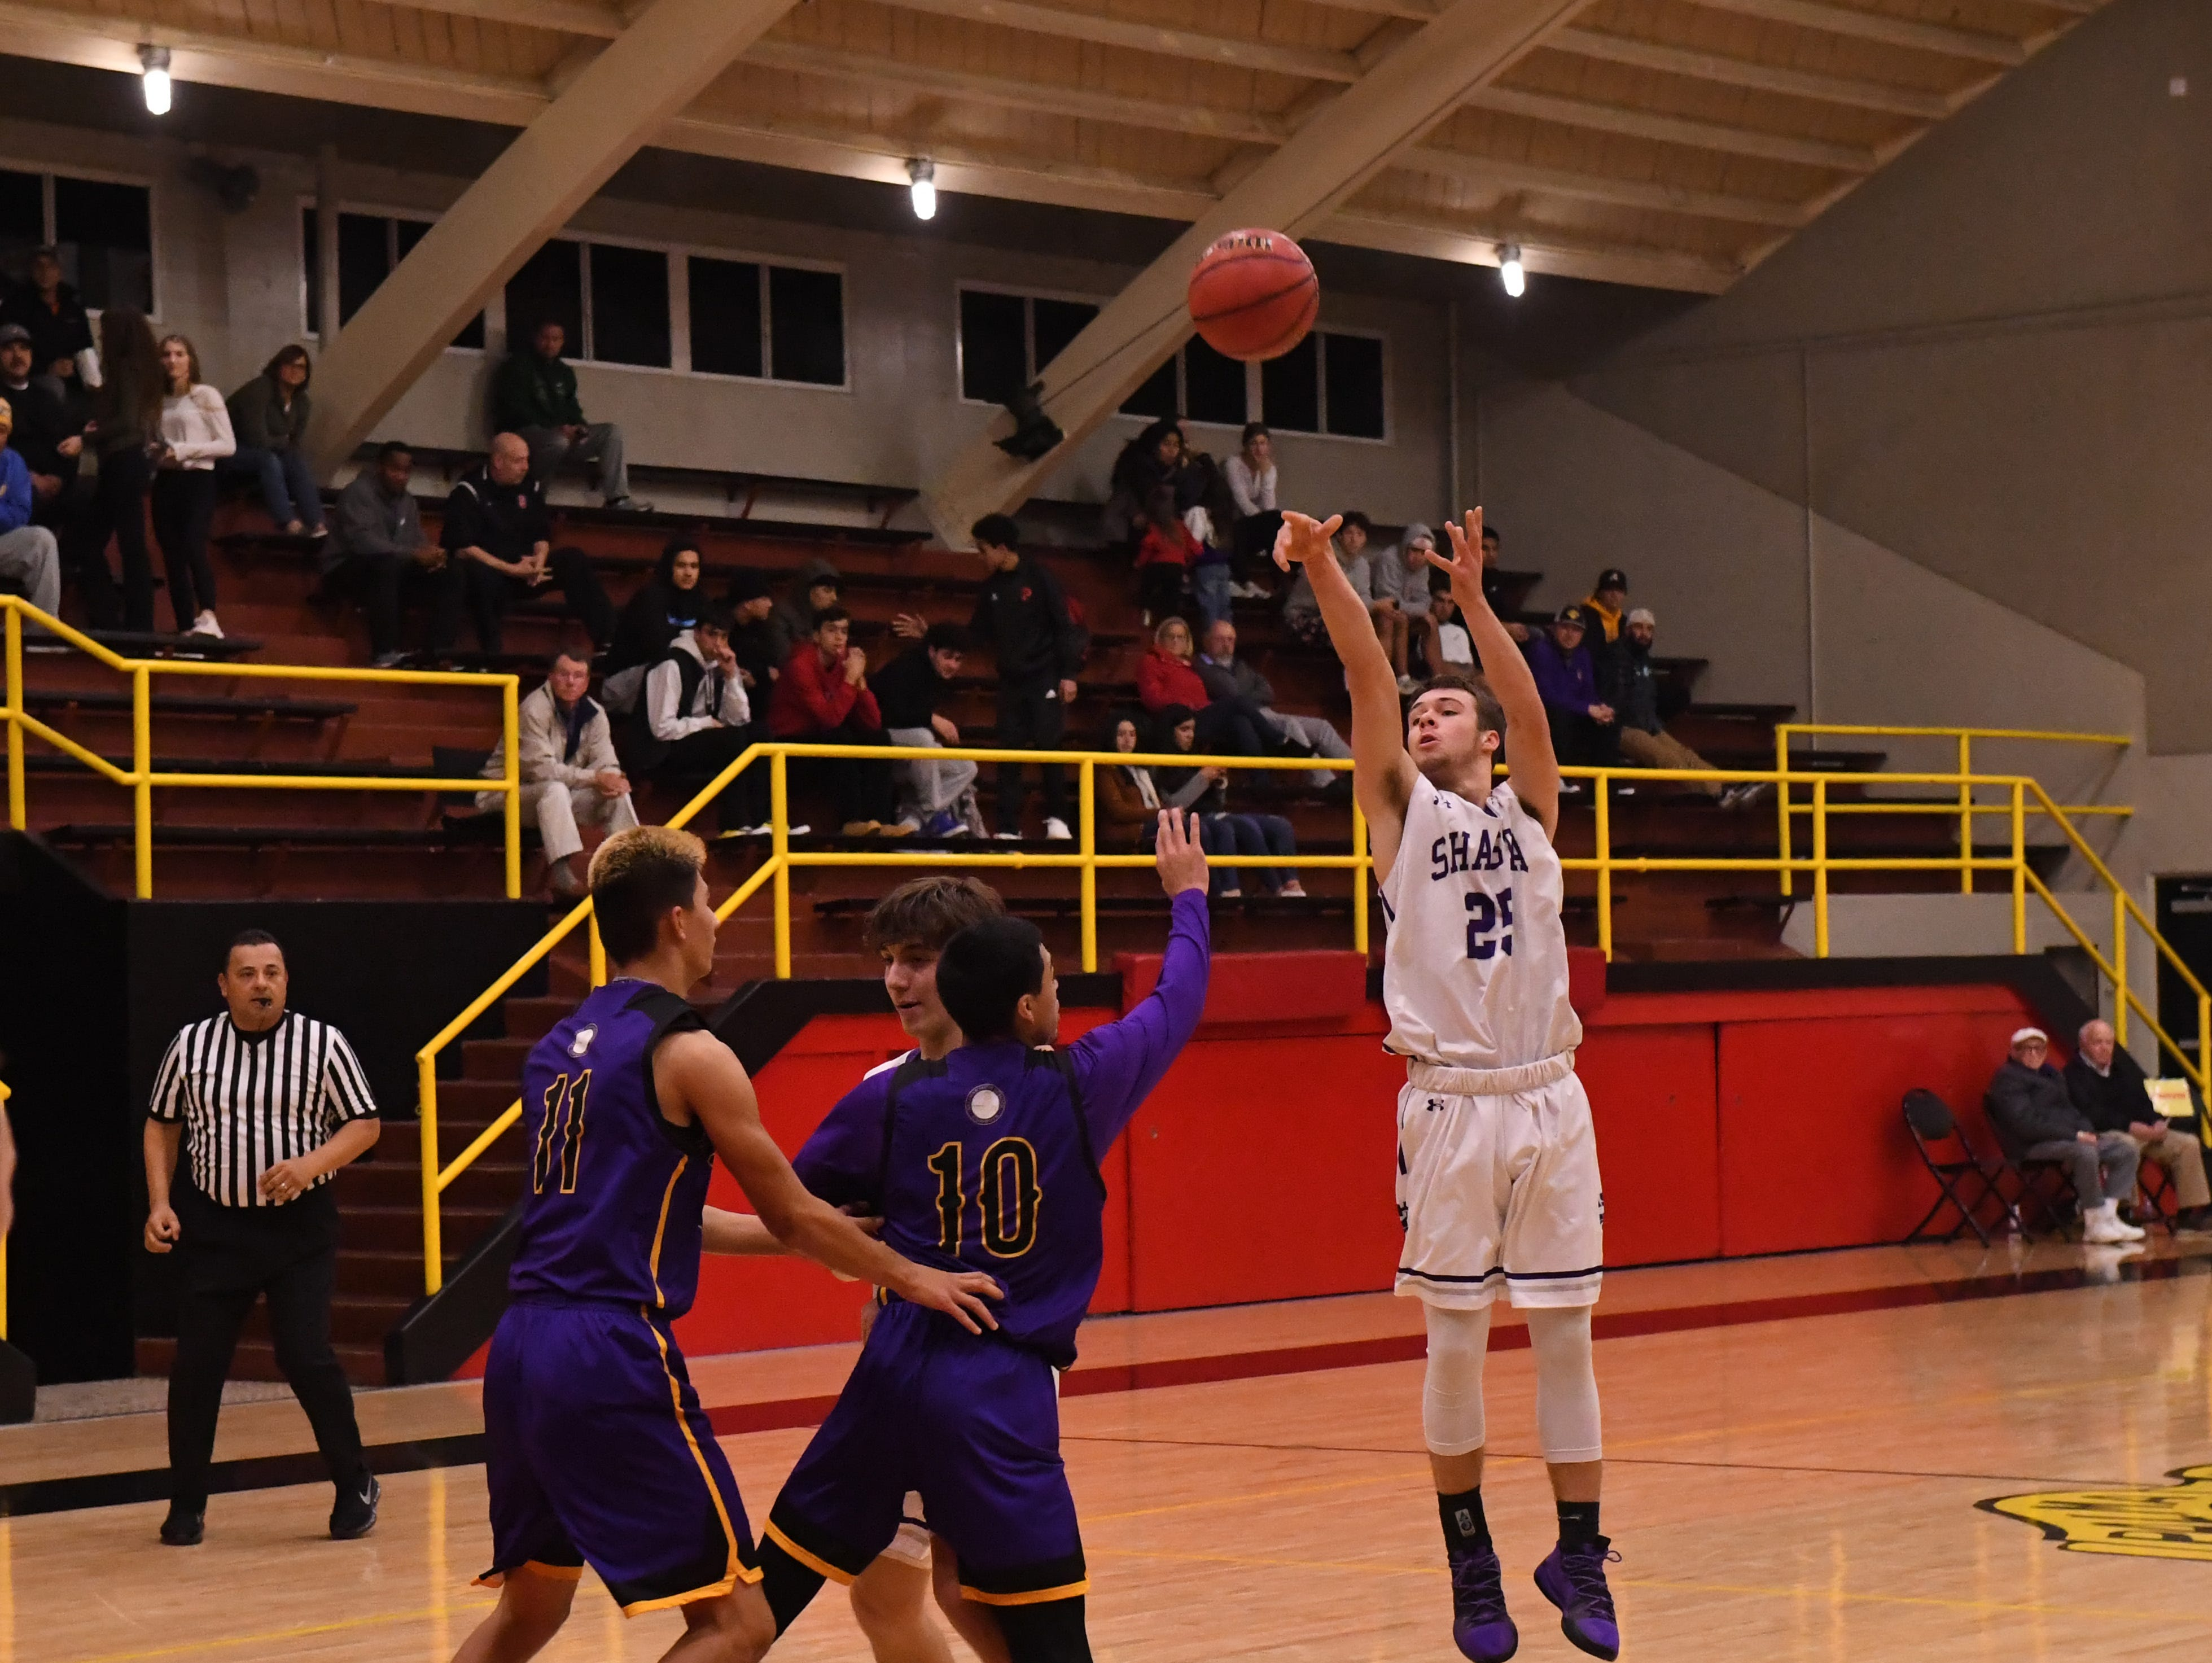 Shasta guard JT Beasley (25) releases a 3-point shot from the top of the arc.